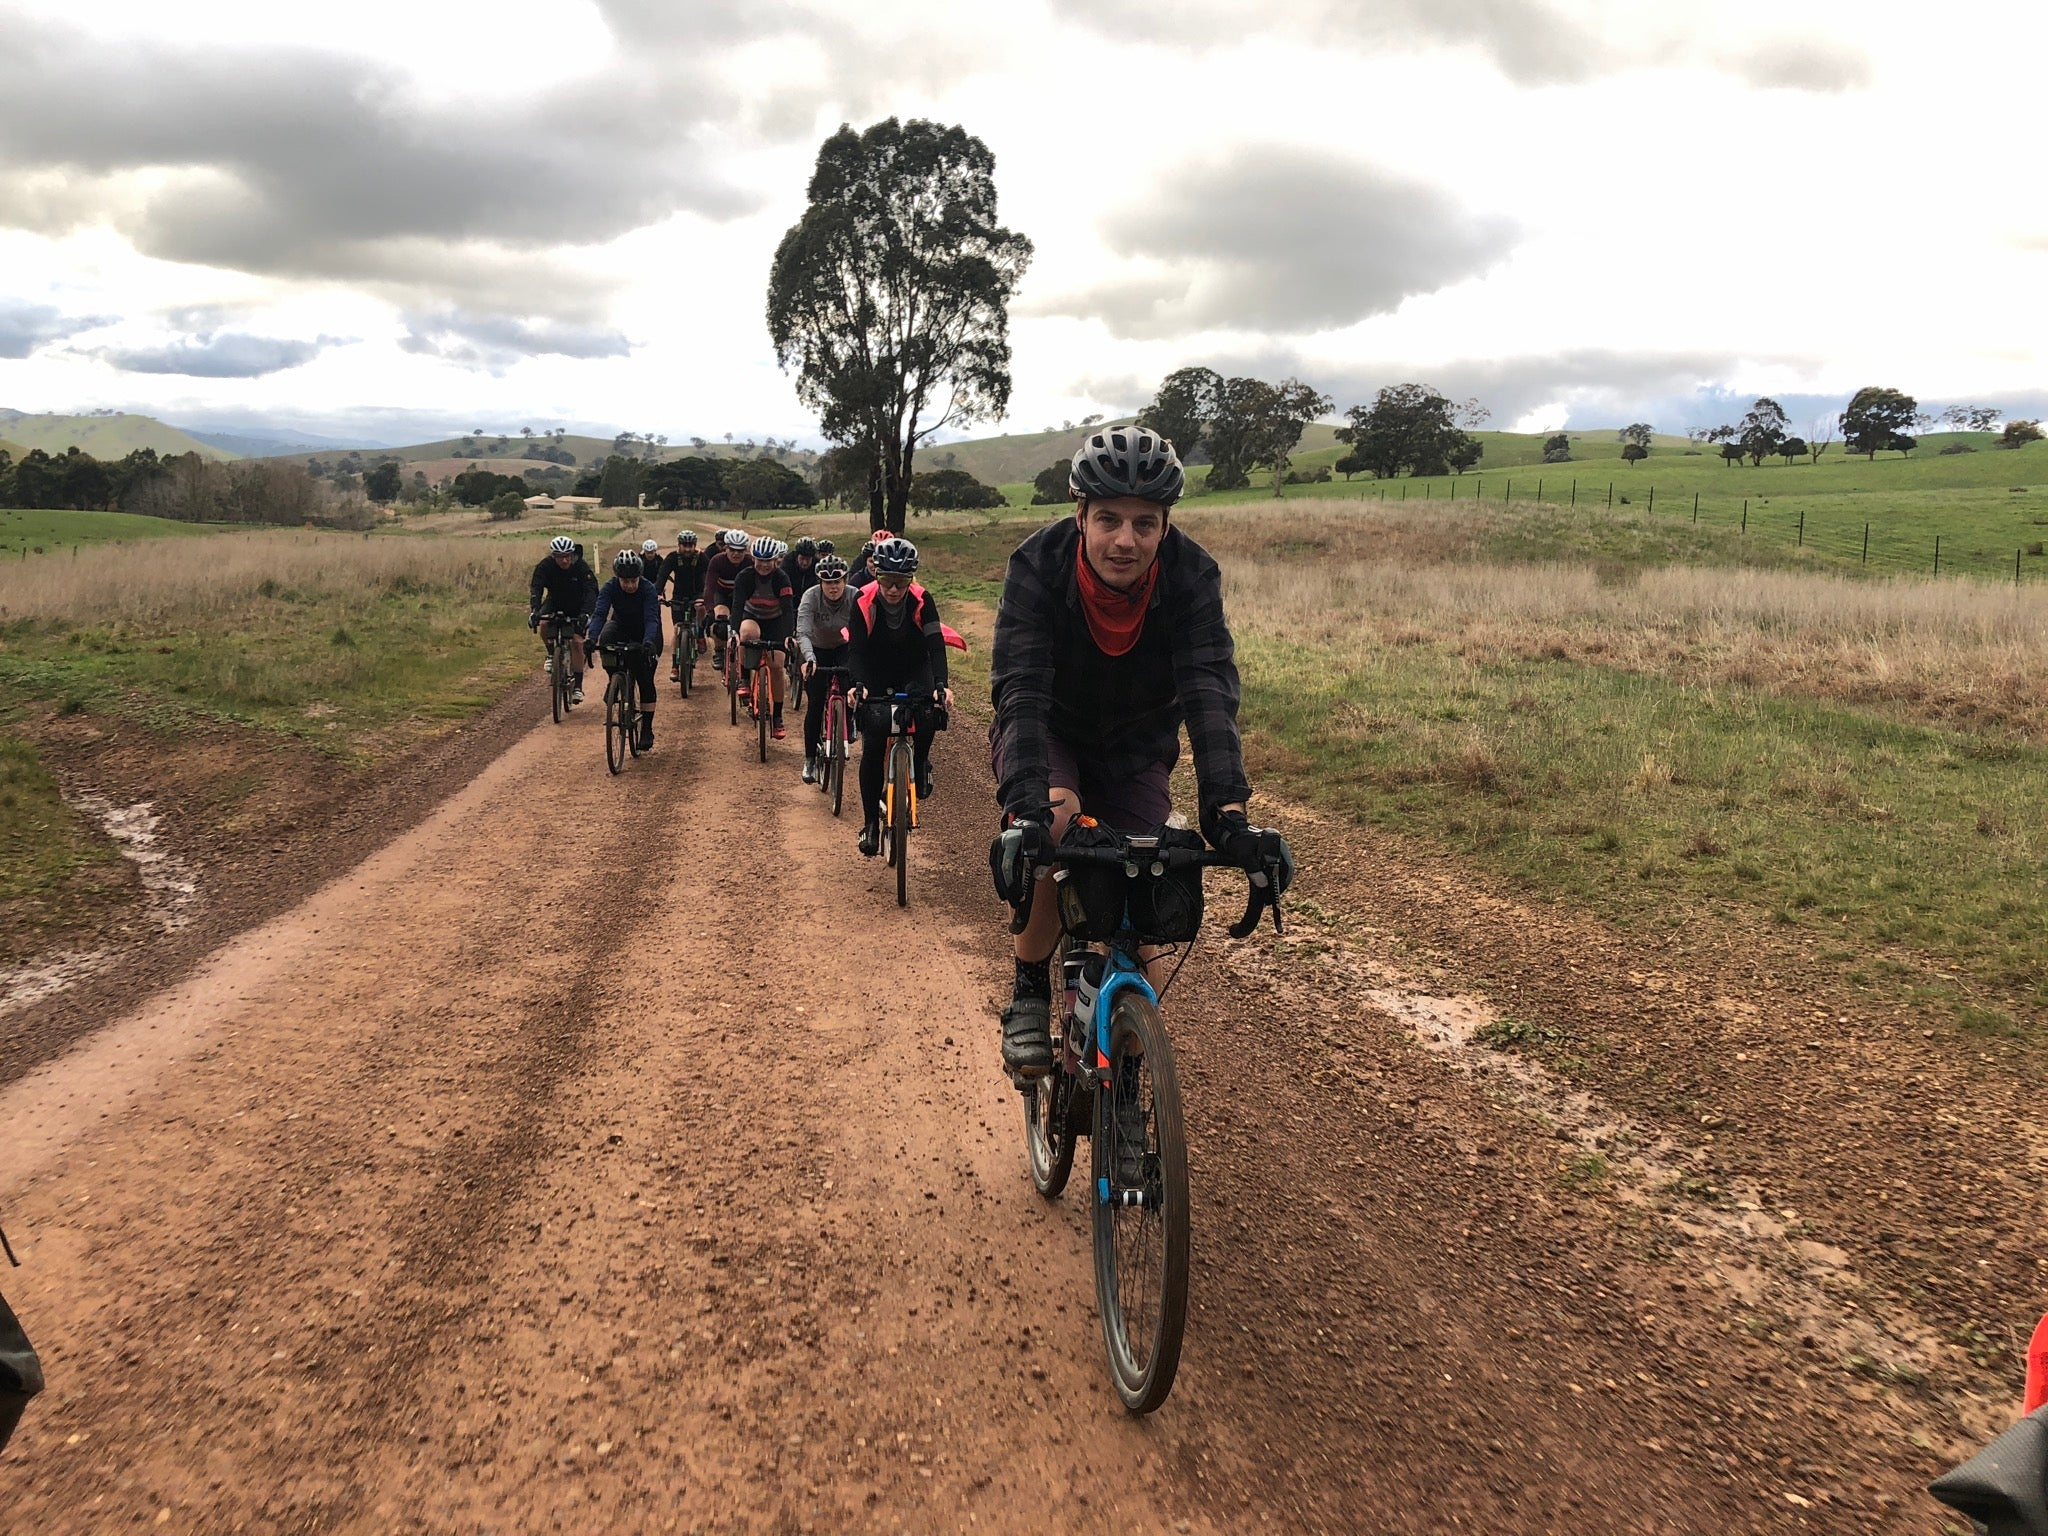 Flashpacking peloton gravel adventure